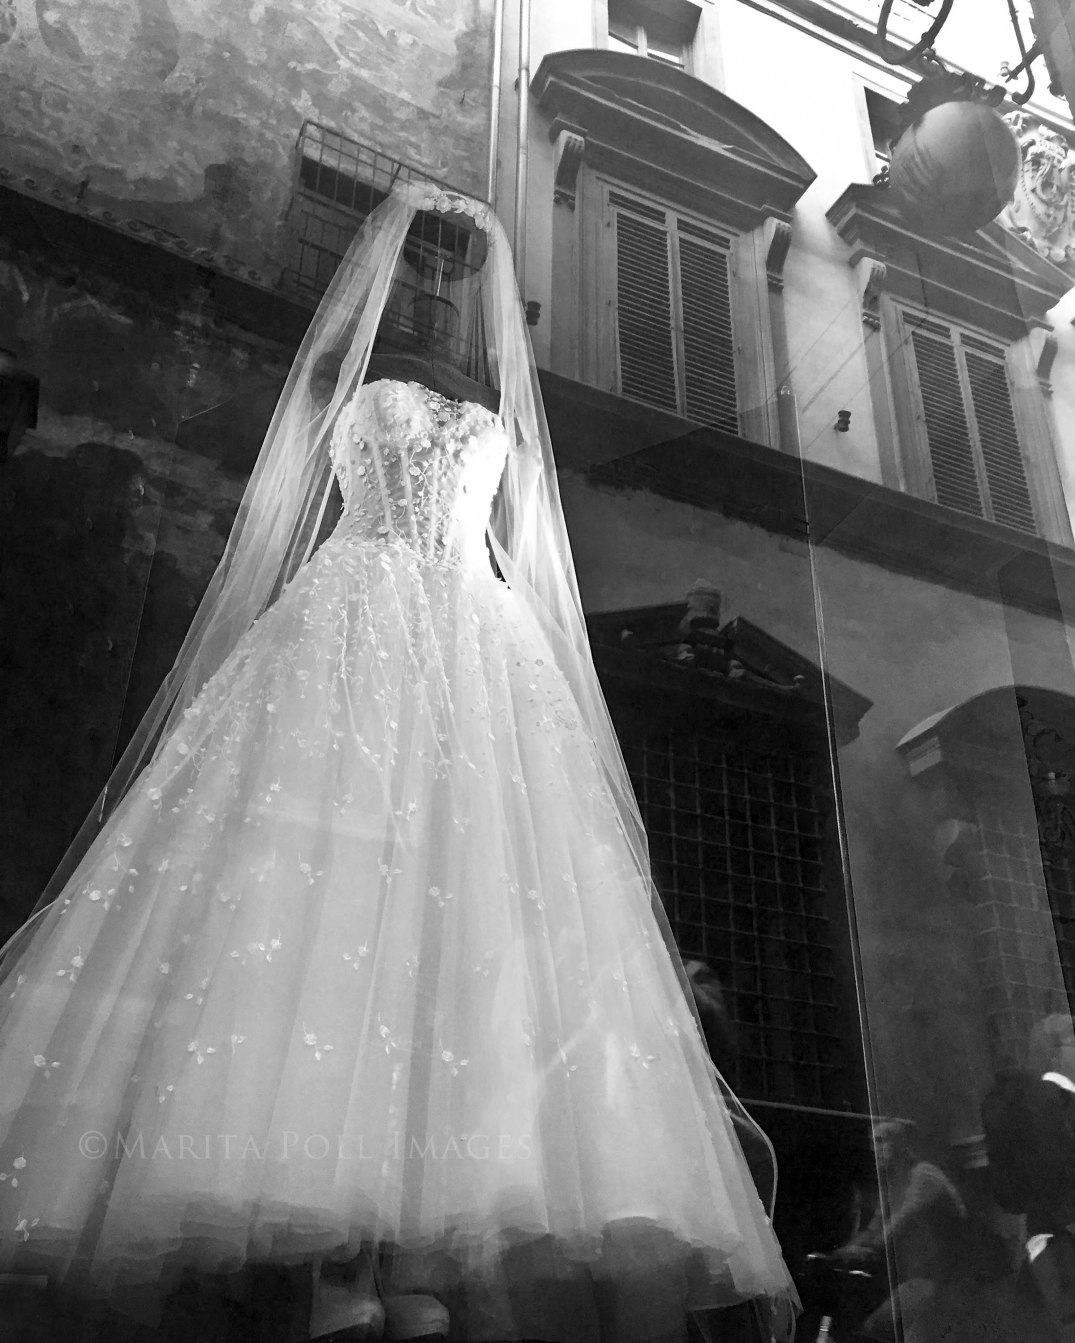 marita-poll-images-florence-italy-wedding-dress